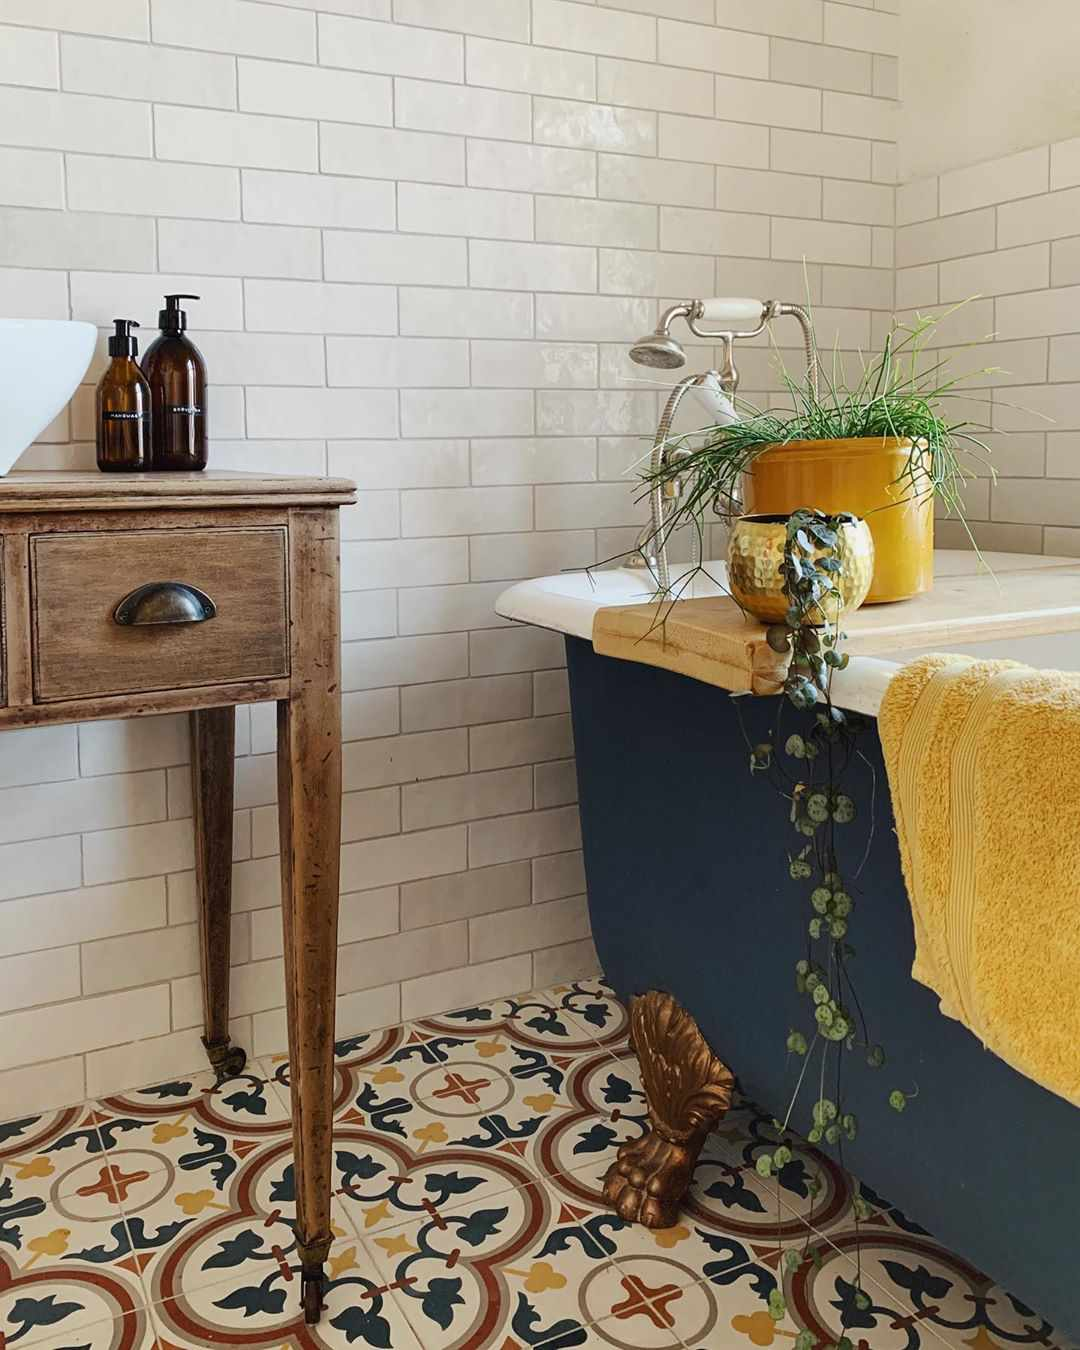 Bathroom with colorful Moroccan tile